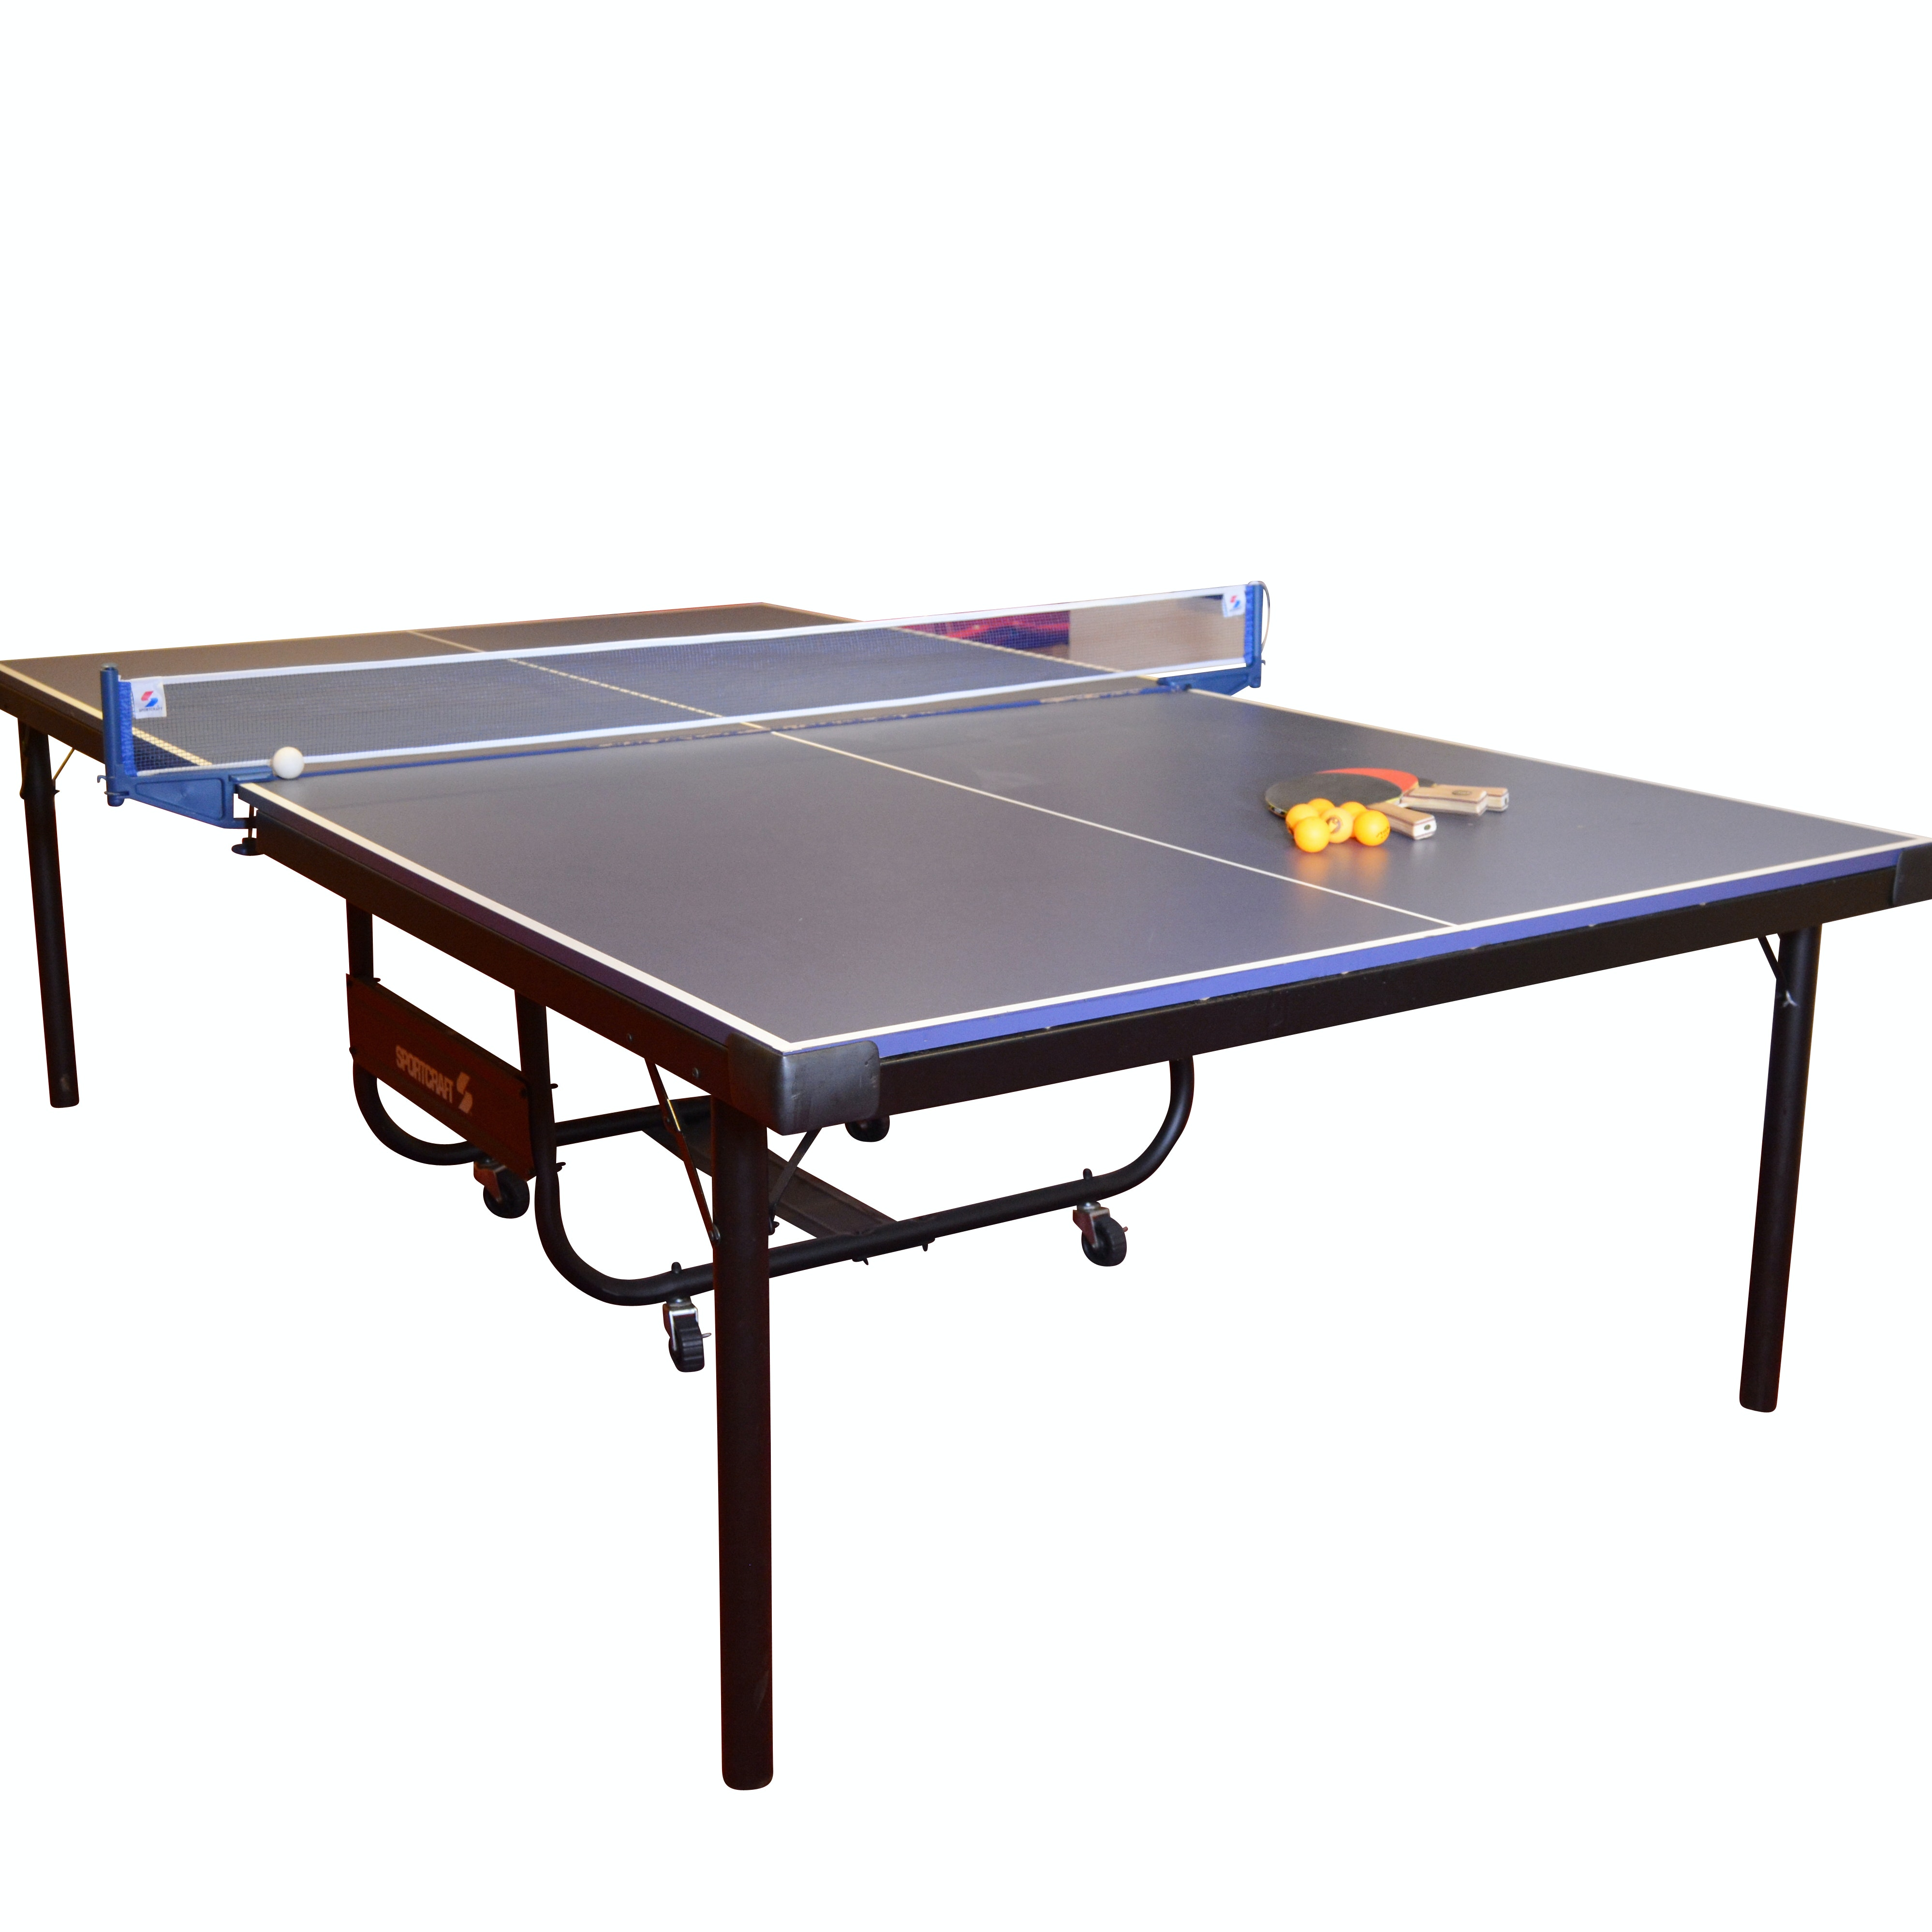 Power Play Table Tennis Table by Sportcraft